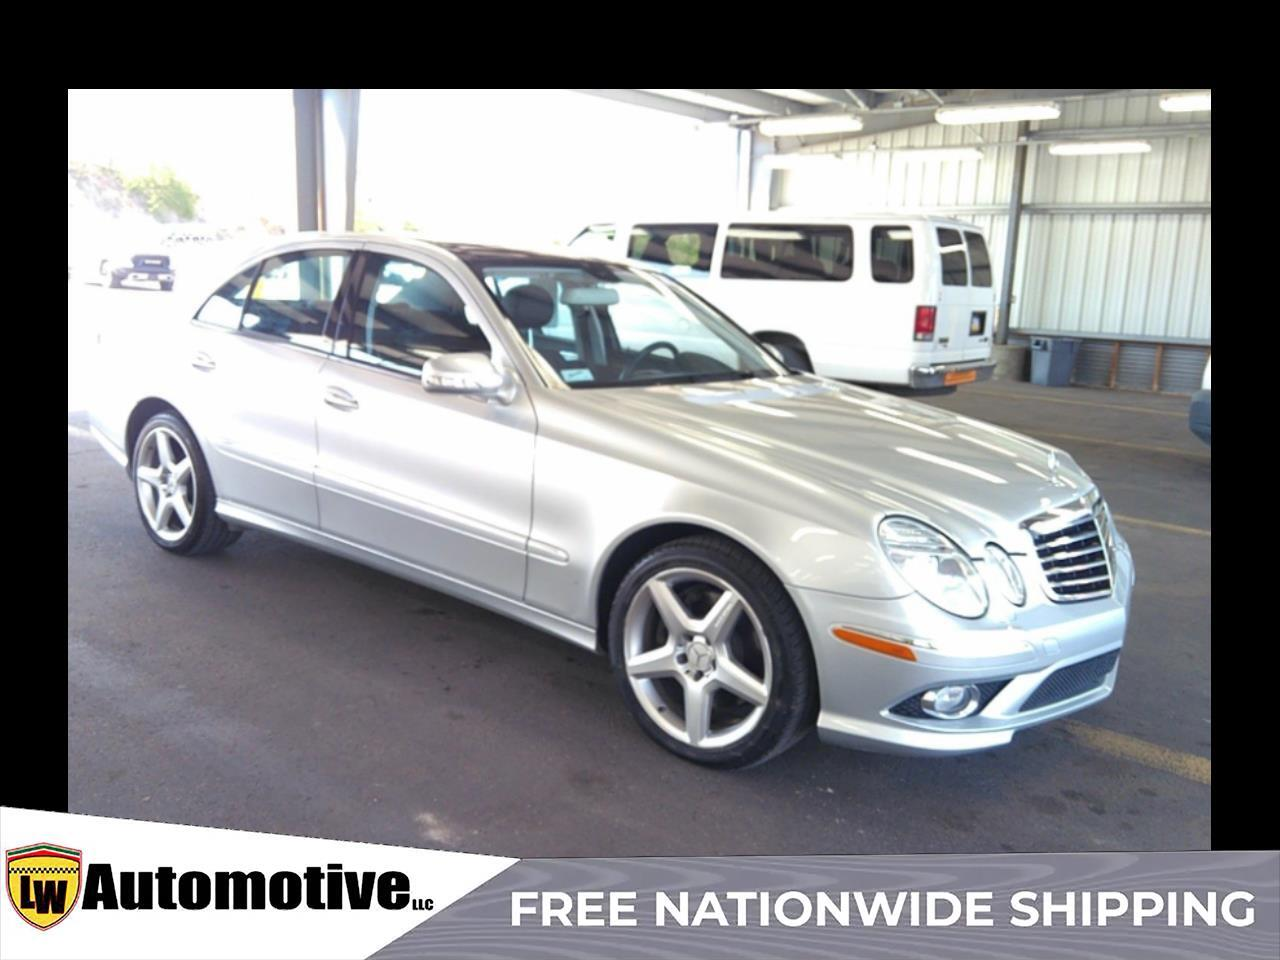 2009 Mercedes-Benz E-Class 4dr Sdn Luxury 3.5L 4MATIC